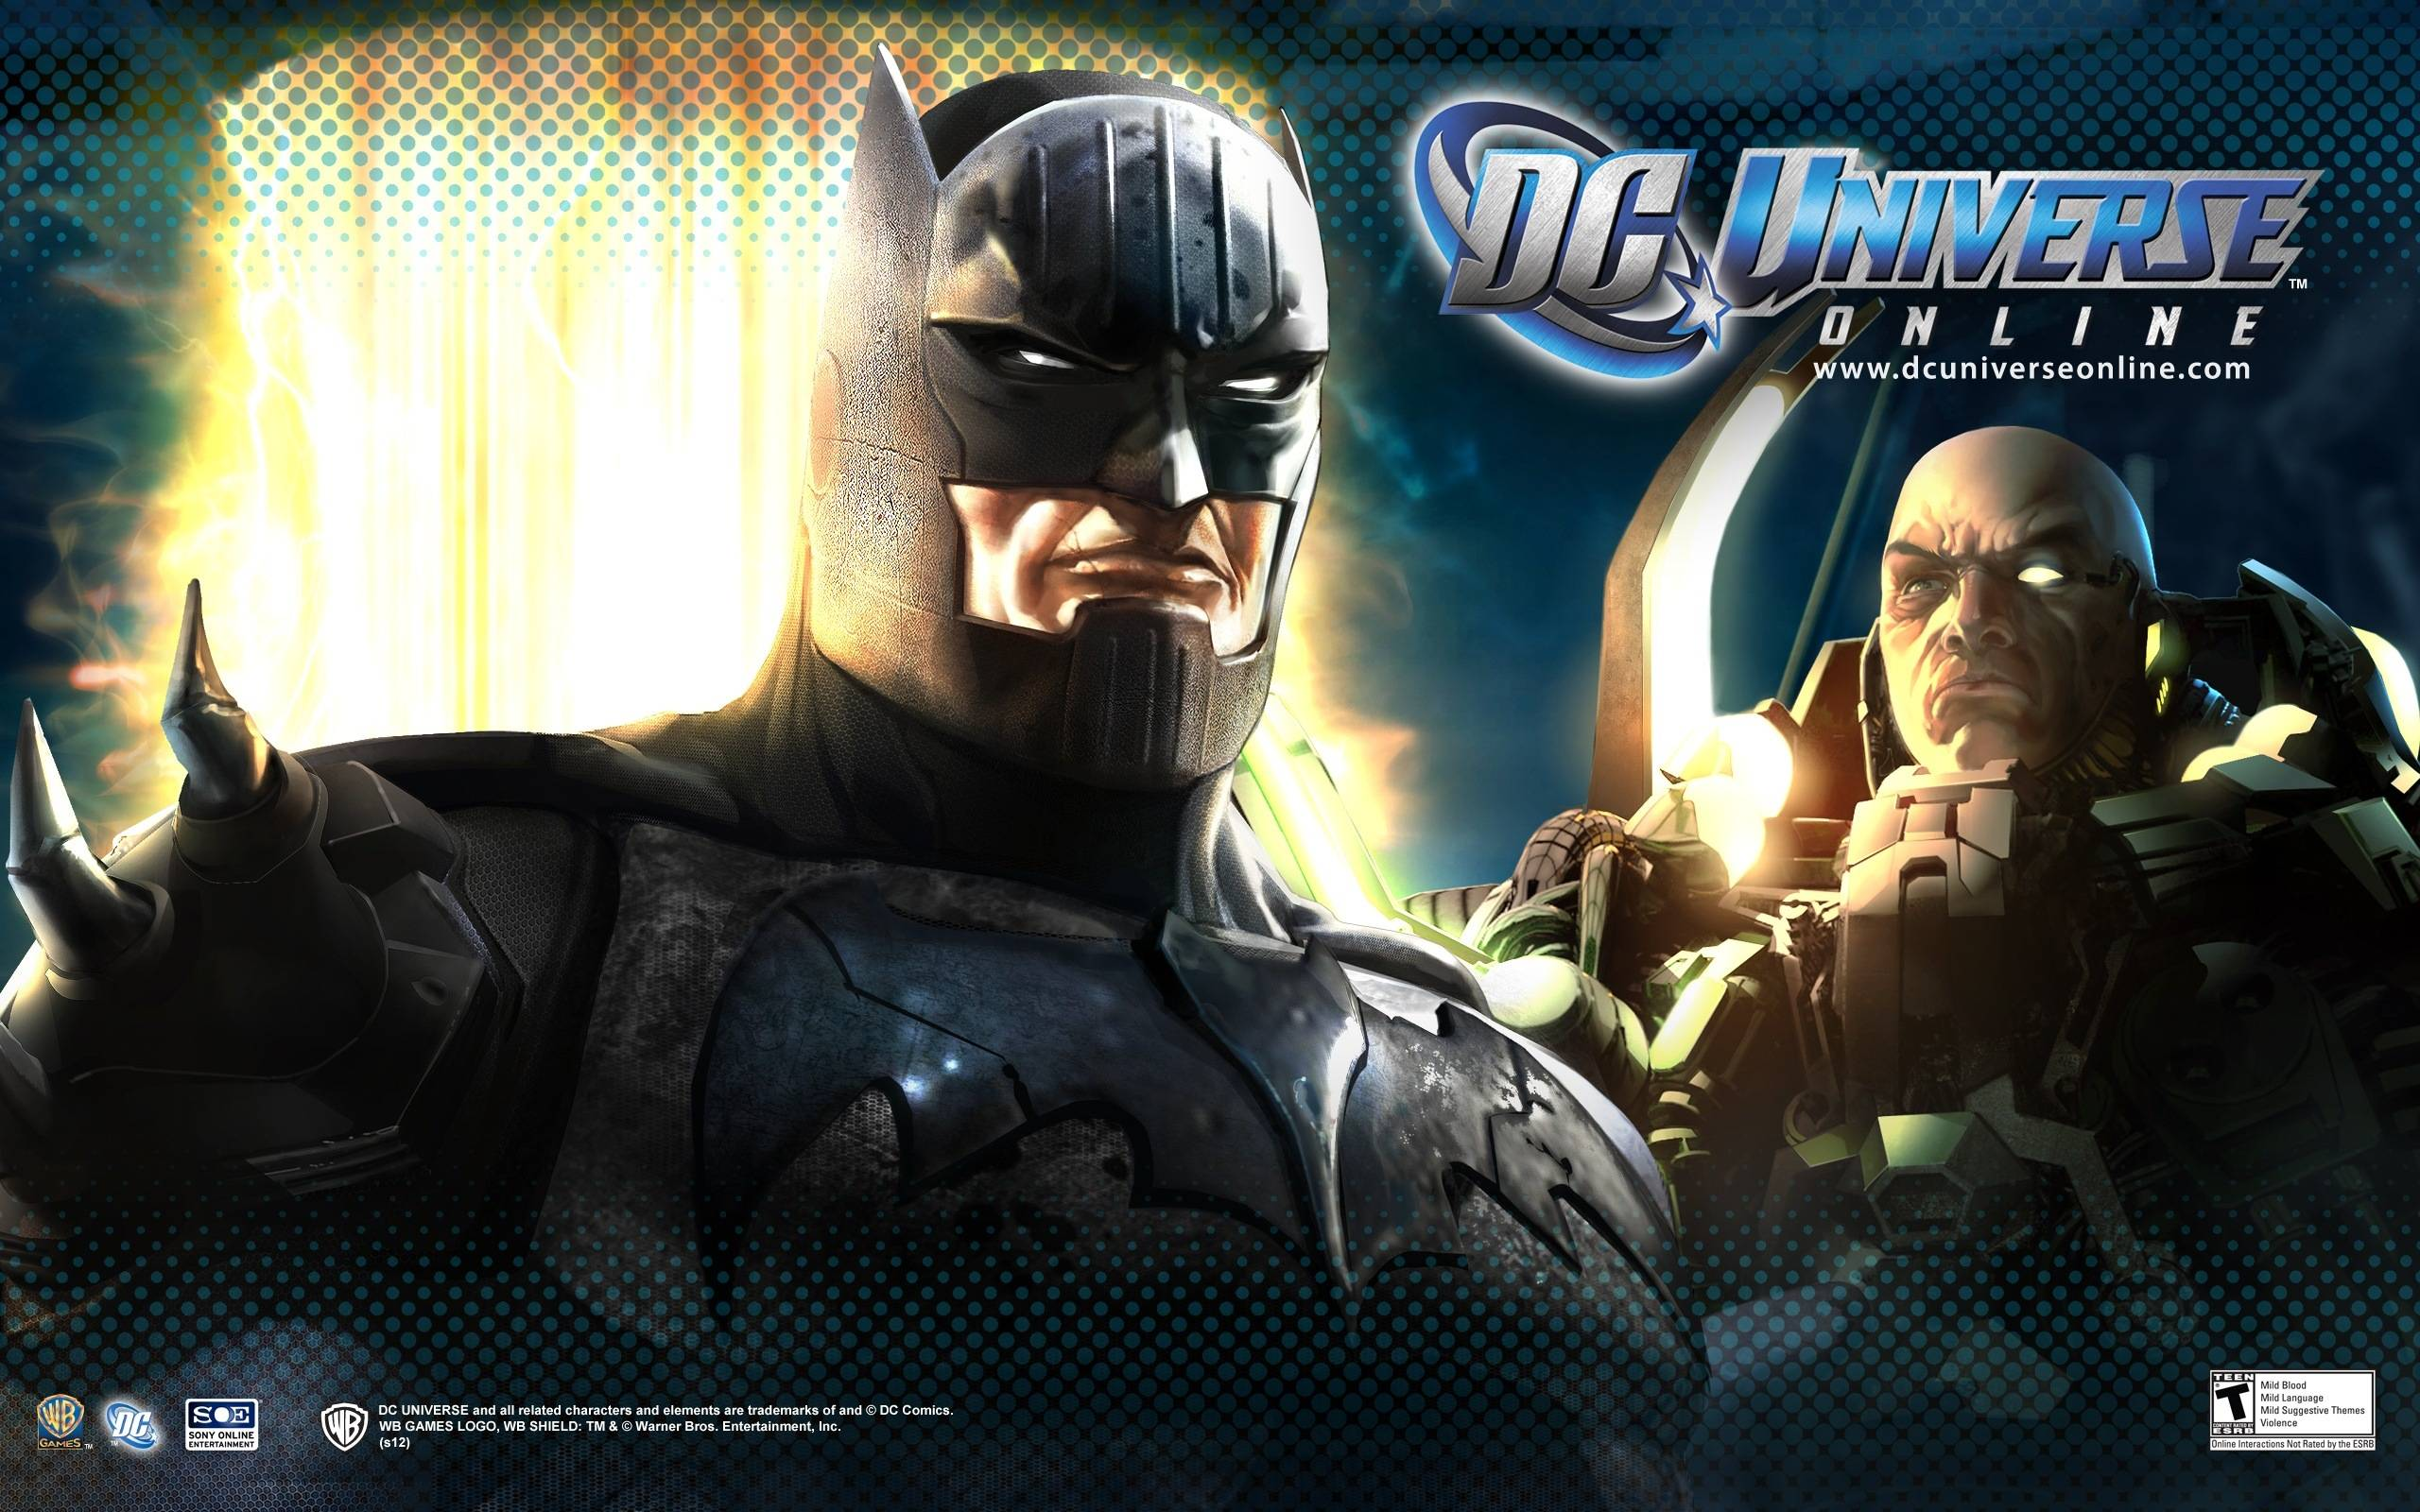 Dc Universe Online Wallpapers Top Free Dc Universe Online Backgrounds Wallpaperaccess